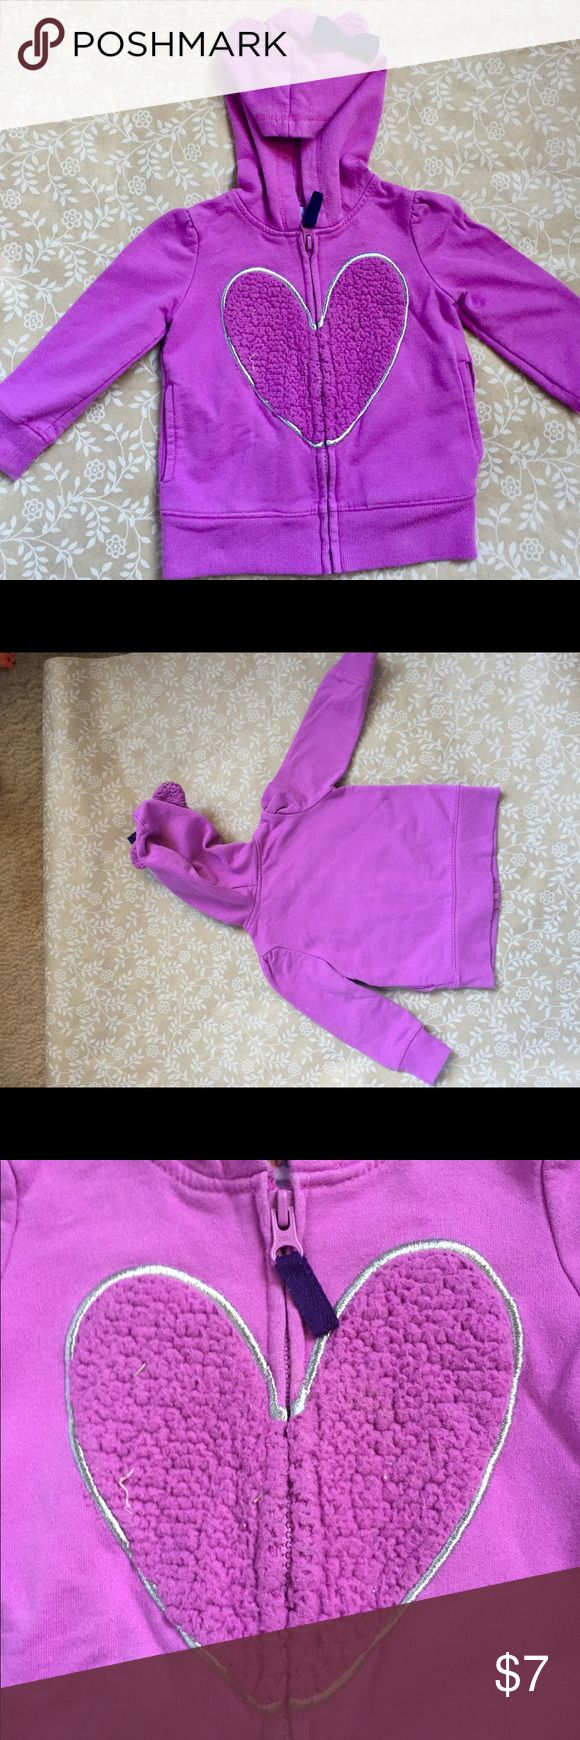 REDUCED! warm and soft Circo zip-up sweatshirt! Adorable purple zip-up sweatshirt with fuzzy heart on the front. Cute little teddy-bear ears with accent bow on hood. Circo Jackets & Coats